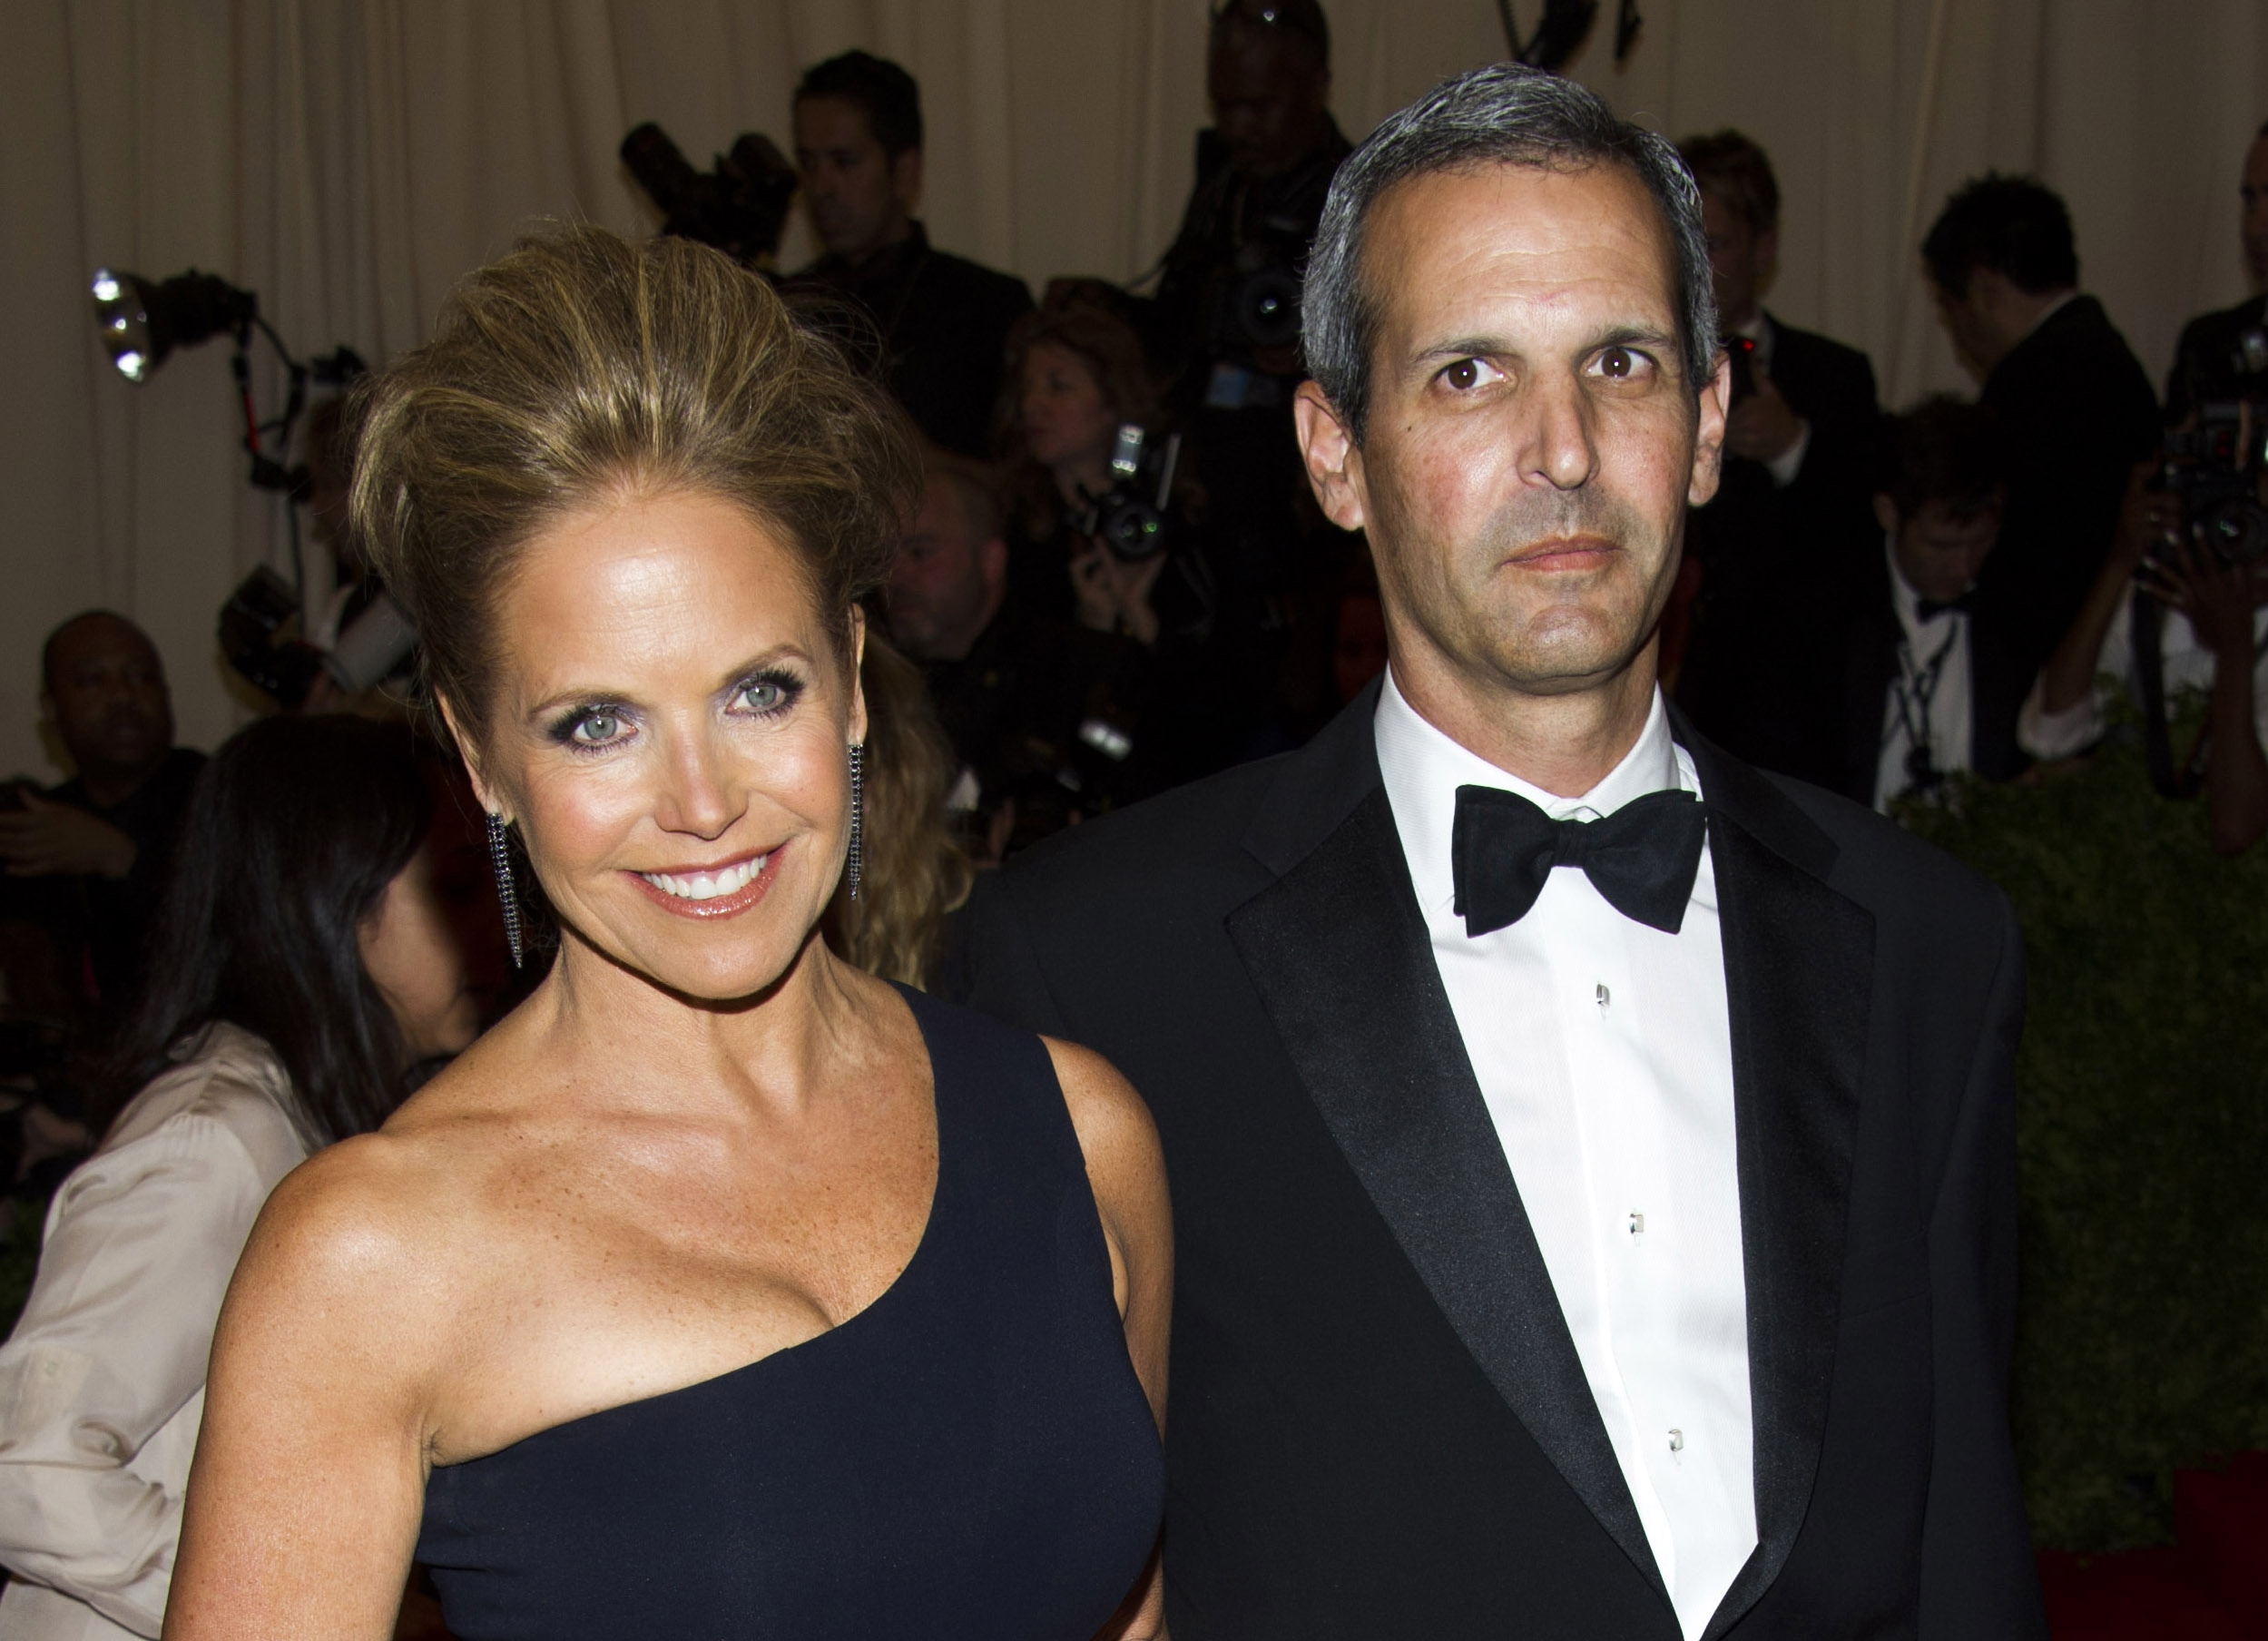 Television personality Katie Couric and her financier boyfriend, John Molner, shown here in May, have become engaged.